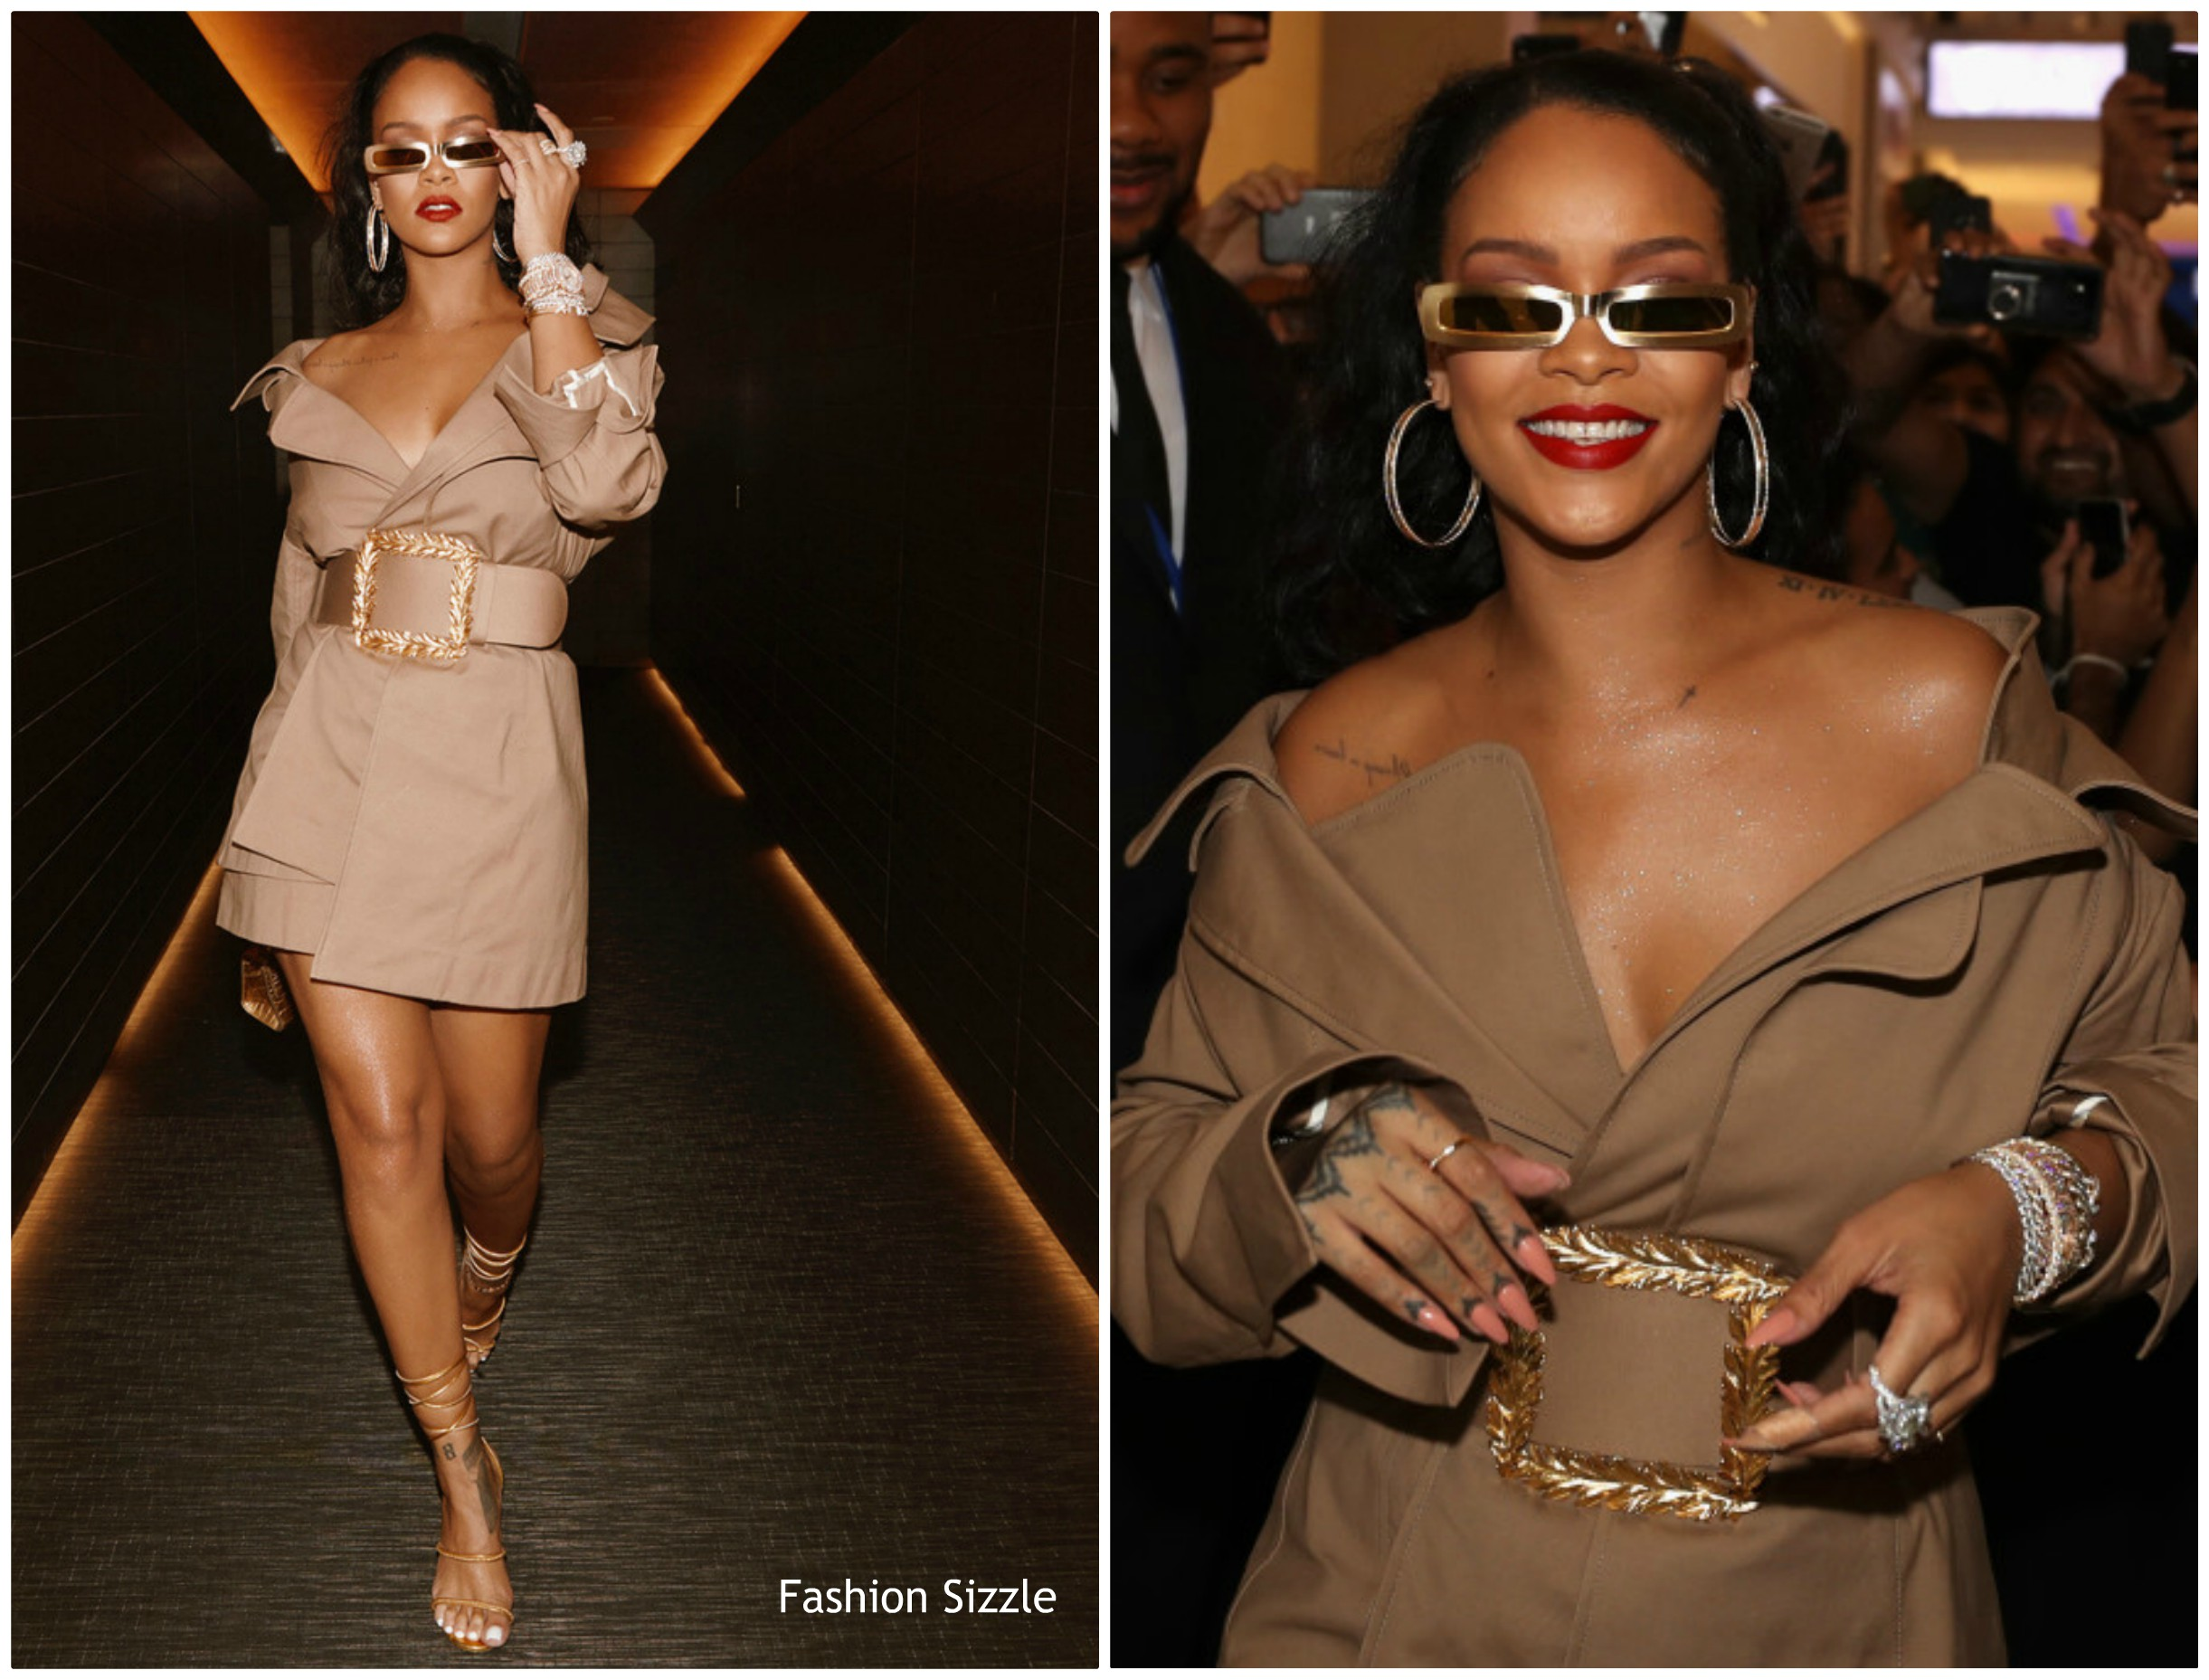 rihanna-in-monse-trenchcoat-promoting-fenty-in-dubai